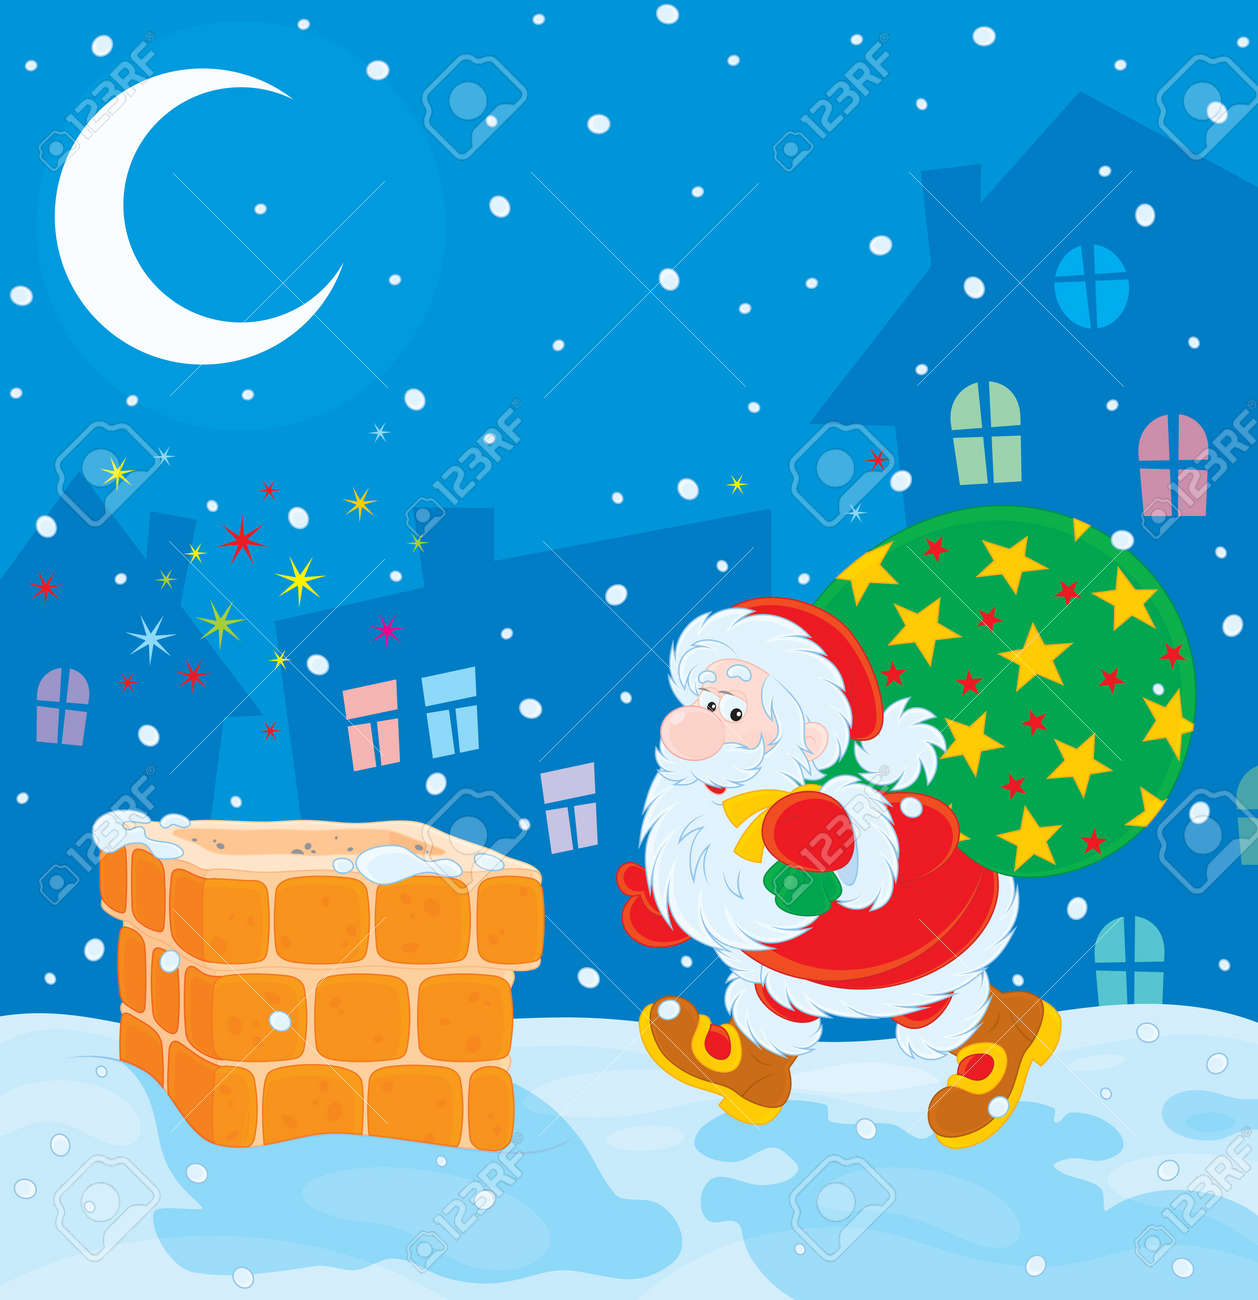 Santa with Christmas gifts on a housetop Stock Vector - 16493741